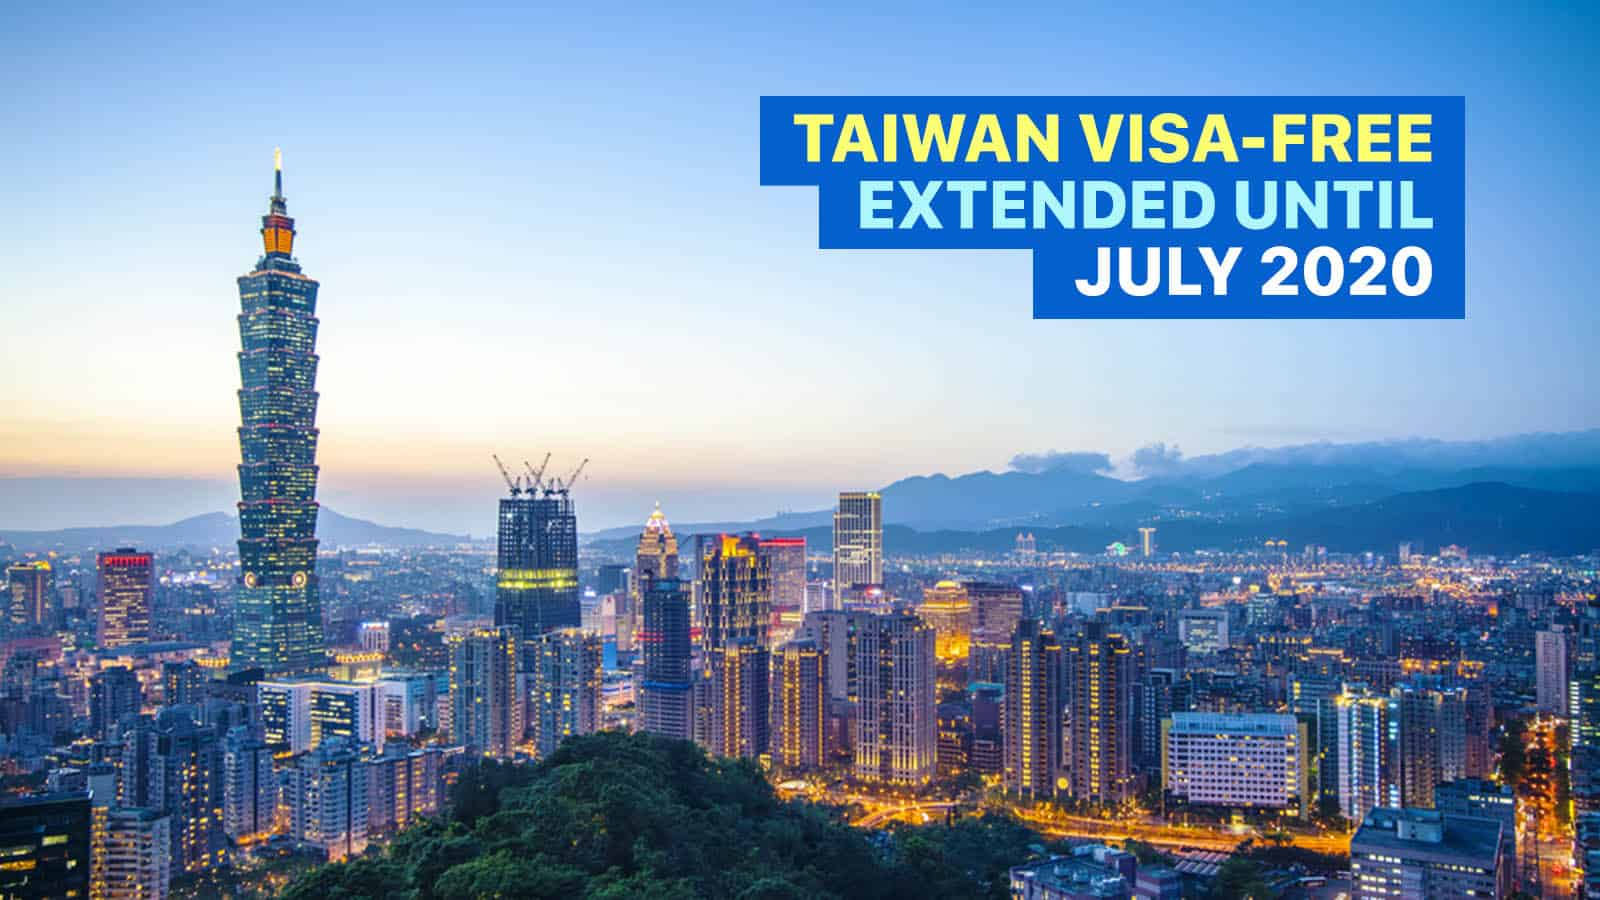 2017 Travel Expenses For Rental Property 2019 Taipei Taiwan Travel Guide With Budget Itinerary The